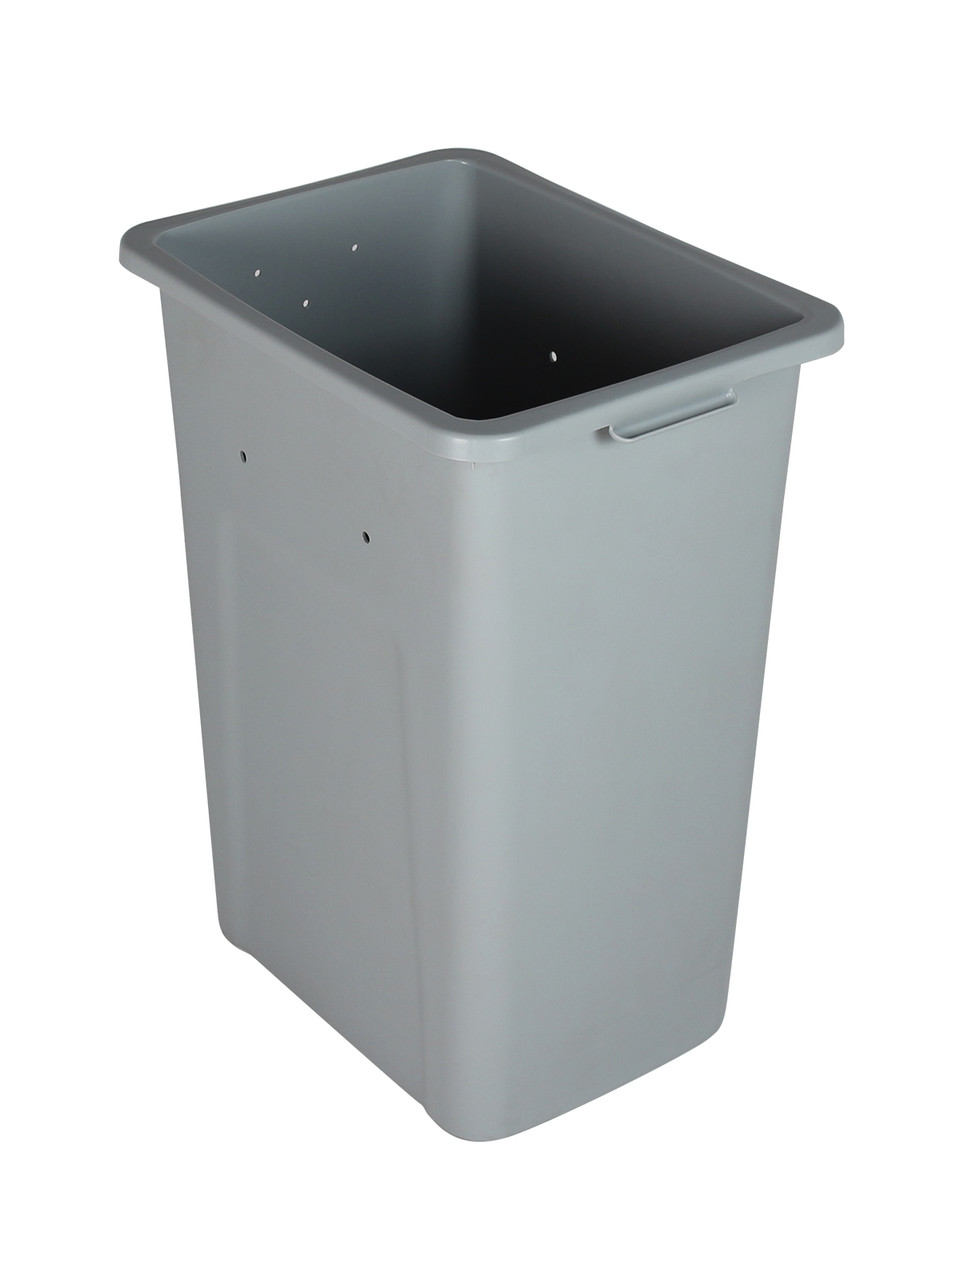 28 Gallon Extra Large Home & Office Trash Can Gray